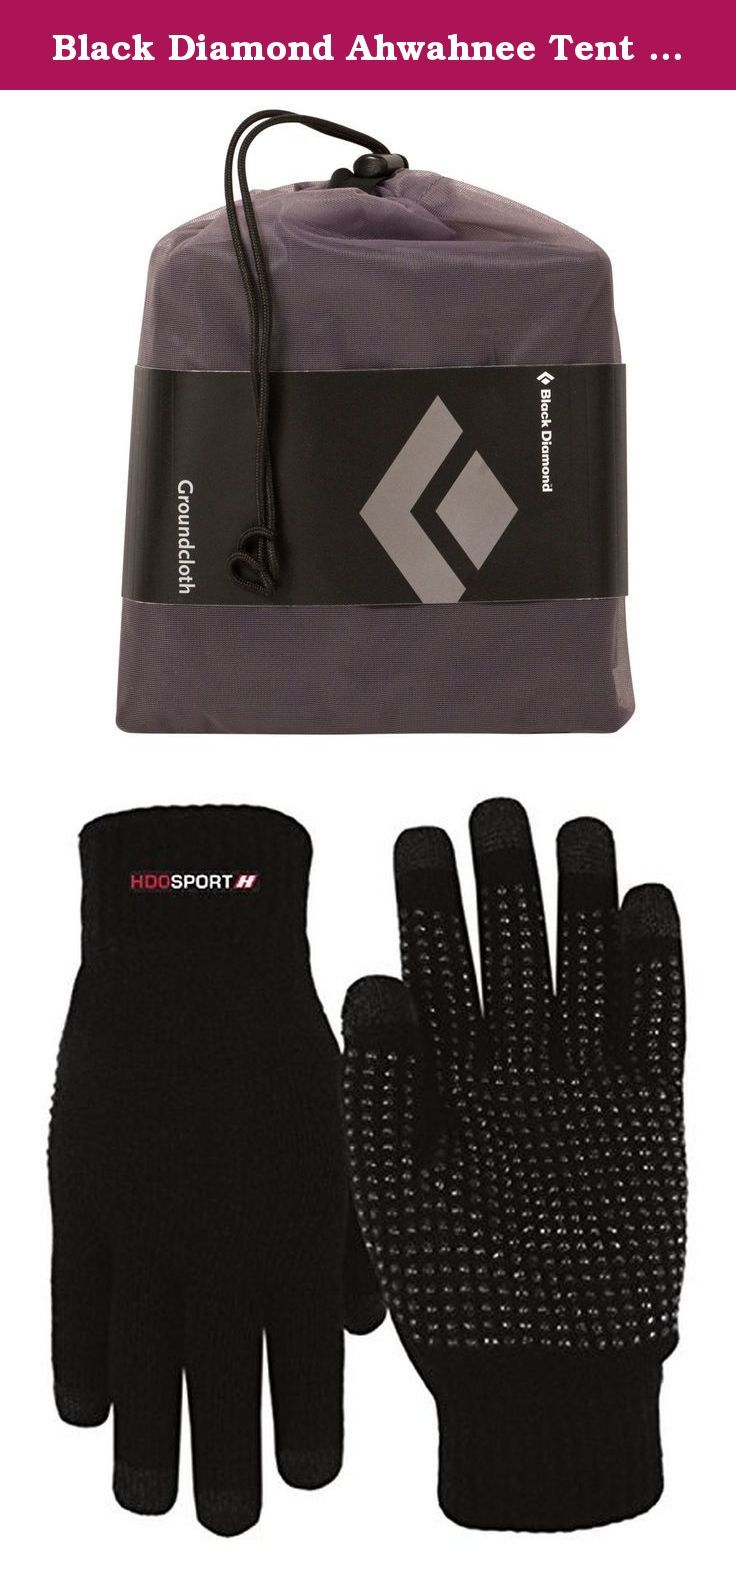 Black Diamond Ahwahnee Tent Ground Cloth and HDO Lite E-tip Gloves with Grippers. Black Diamond Ahwahnee Tent Ground Cloth.